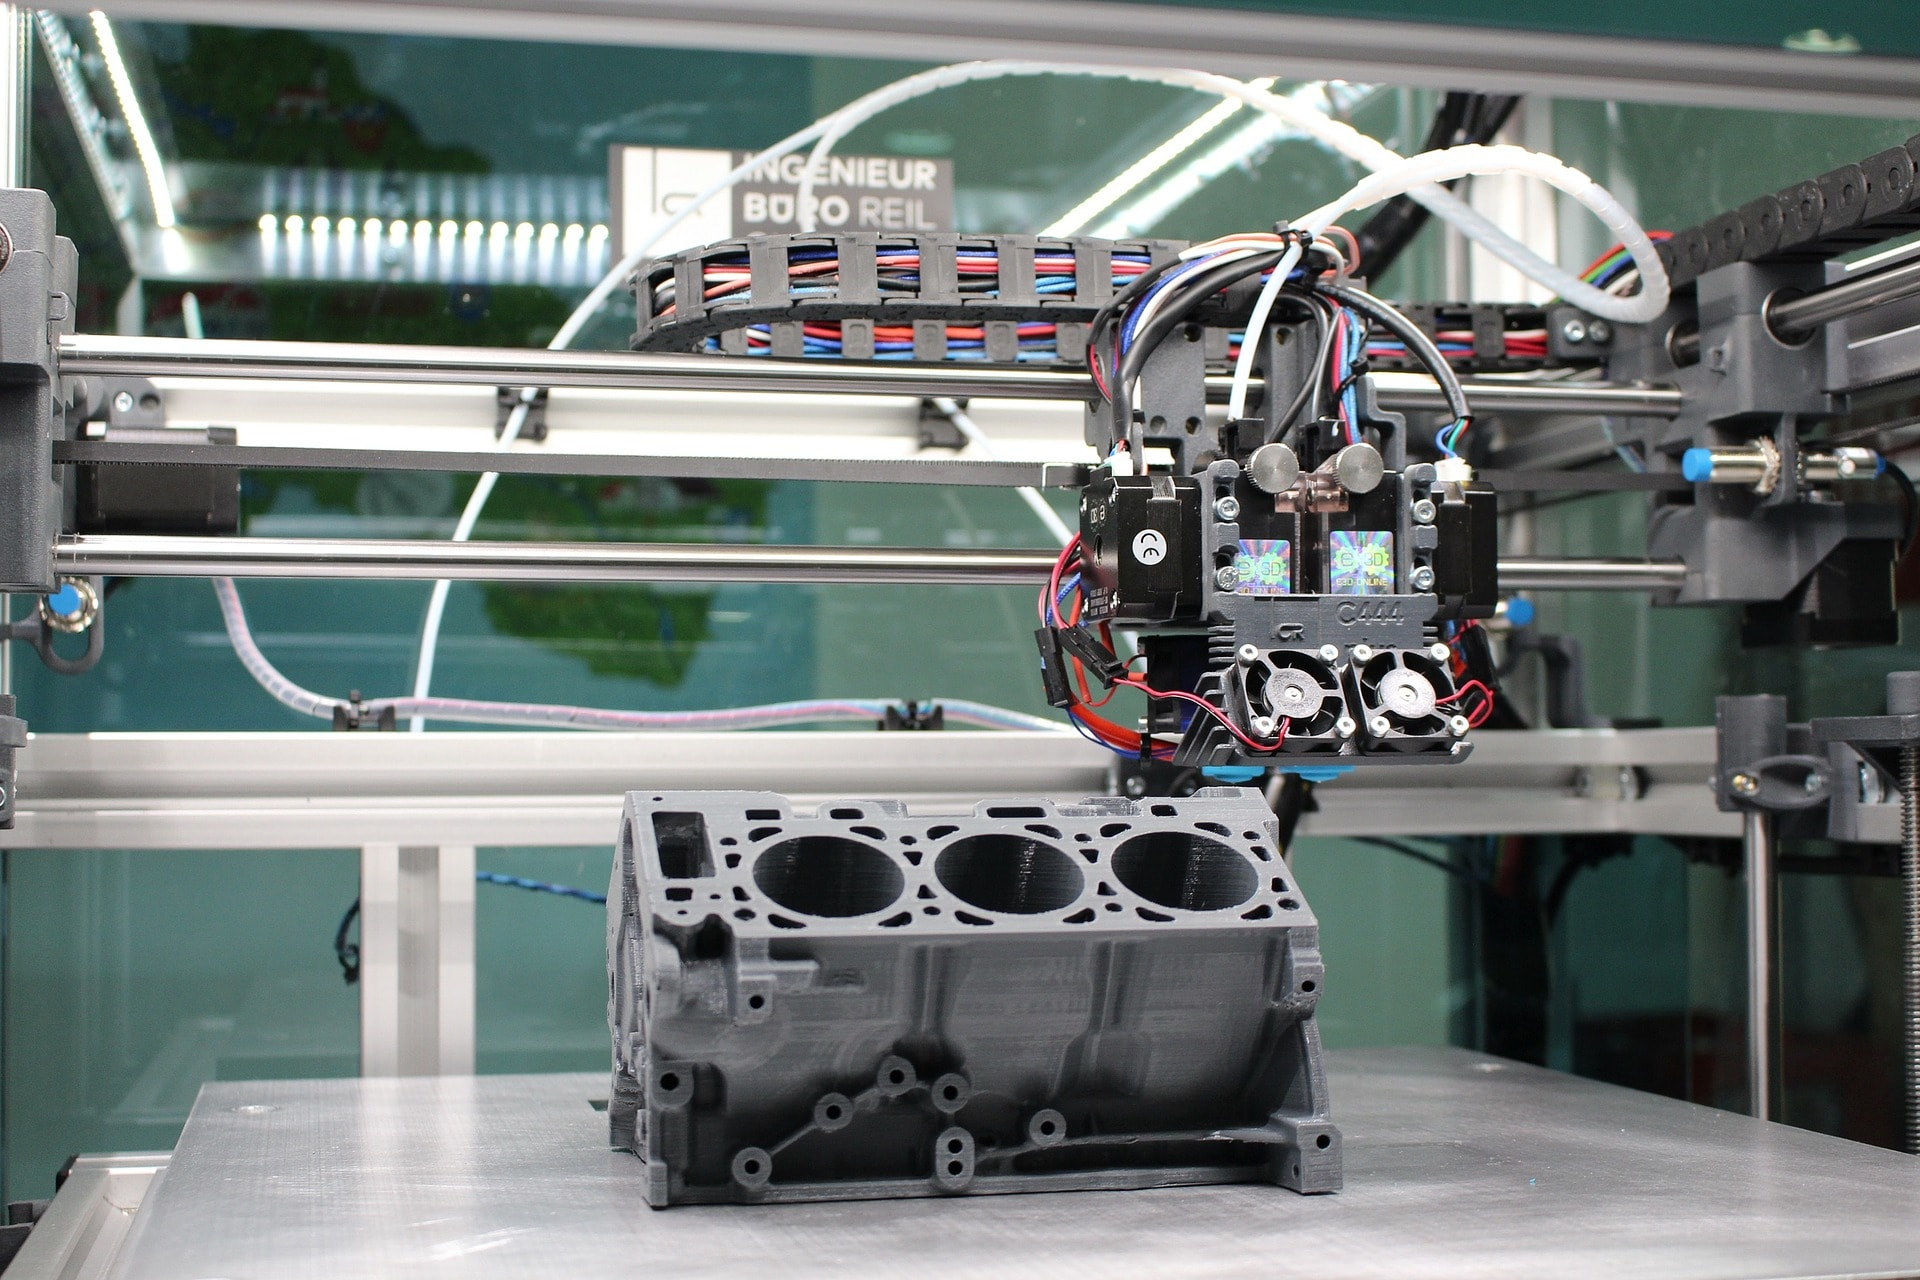 3D Printing: Copying and Creation in a Cutting-Edge Industry